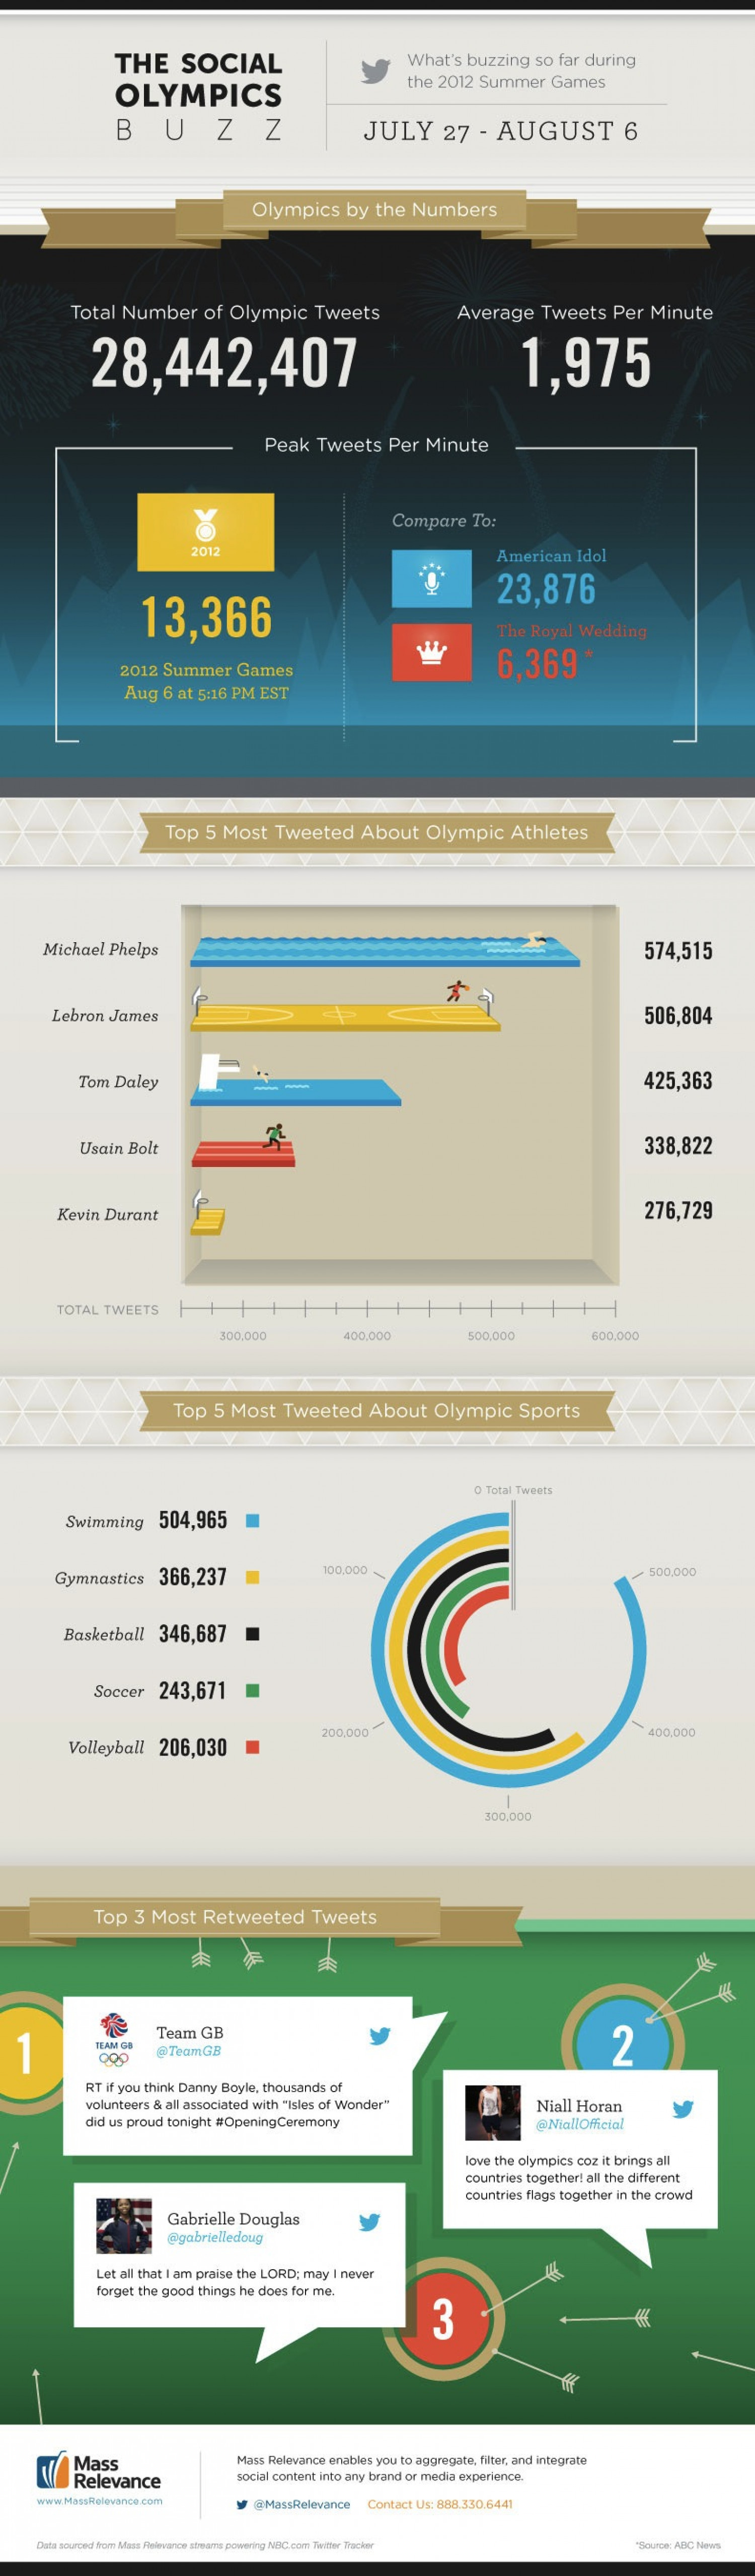 The Social Olympics Buzz Infographic